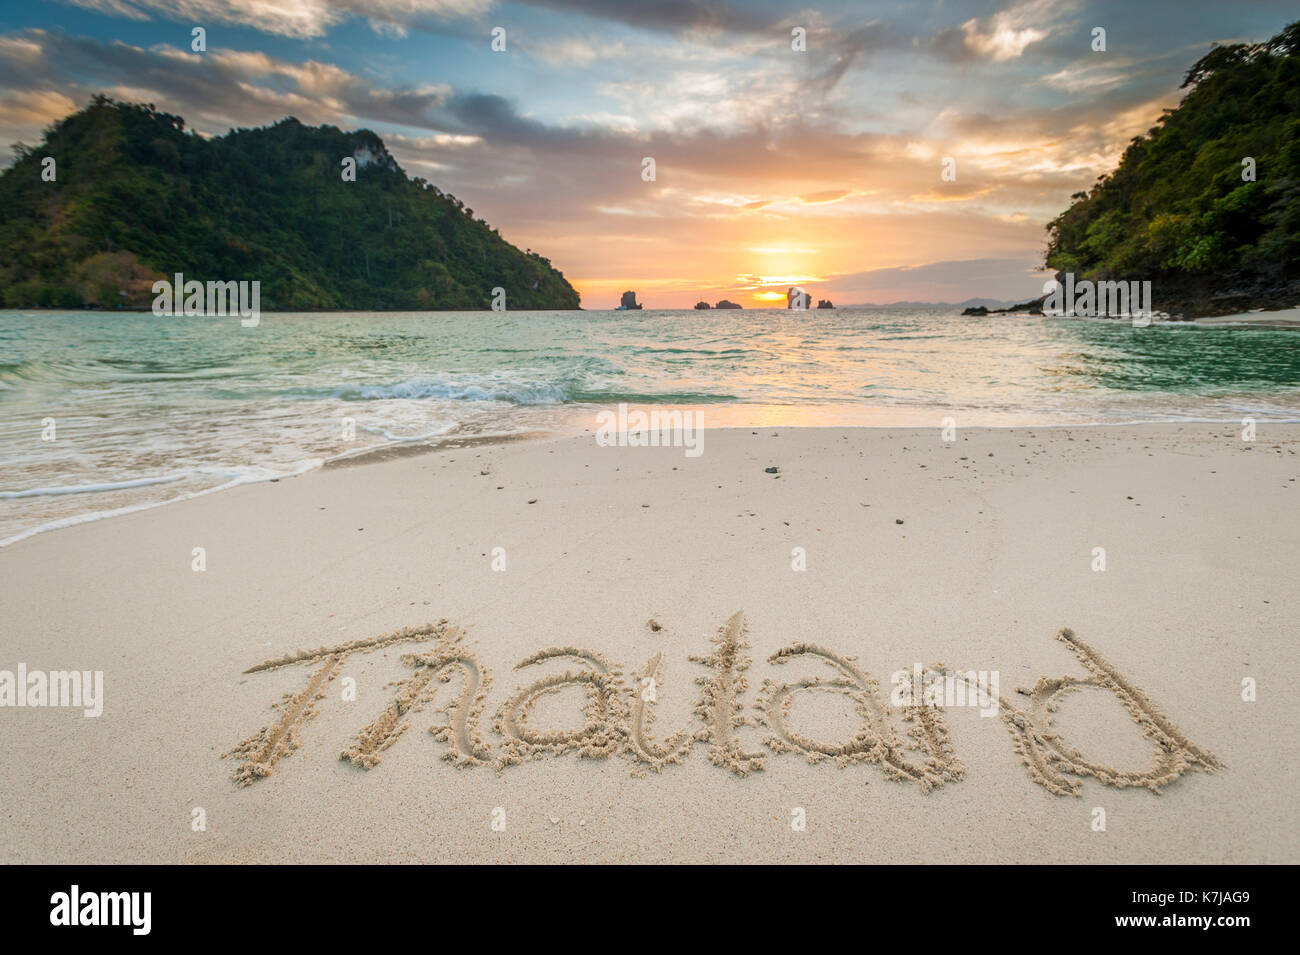 'Thailand' written in the sand on the beach at Tup Island with the sunset over the sea in the background, Thailand. - Stock Image